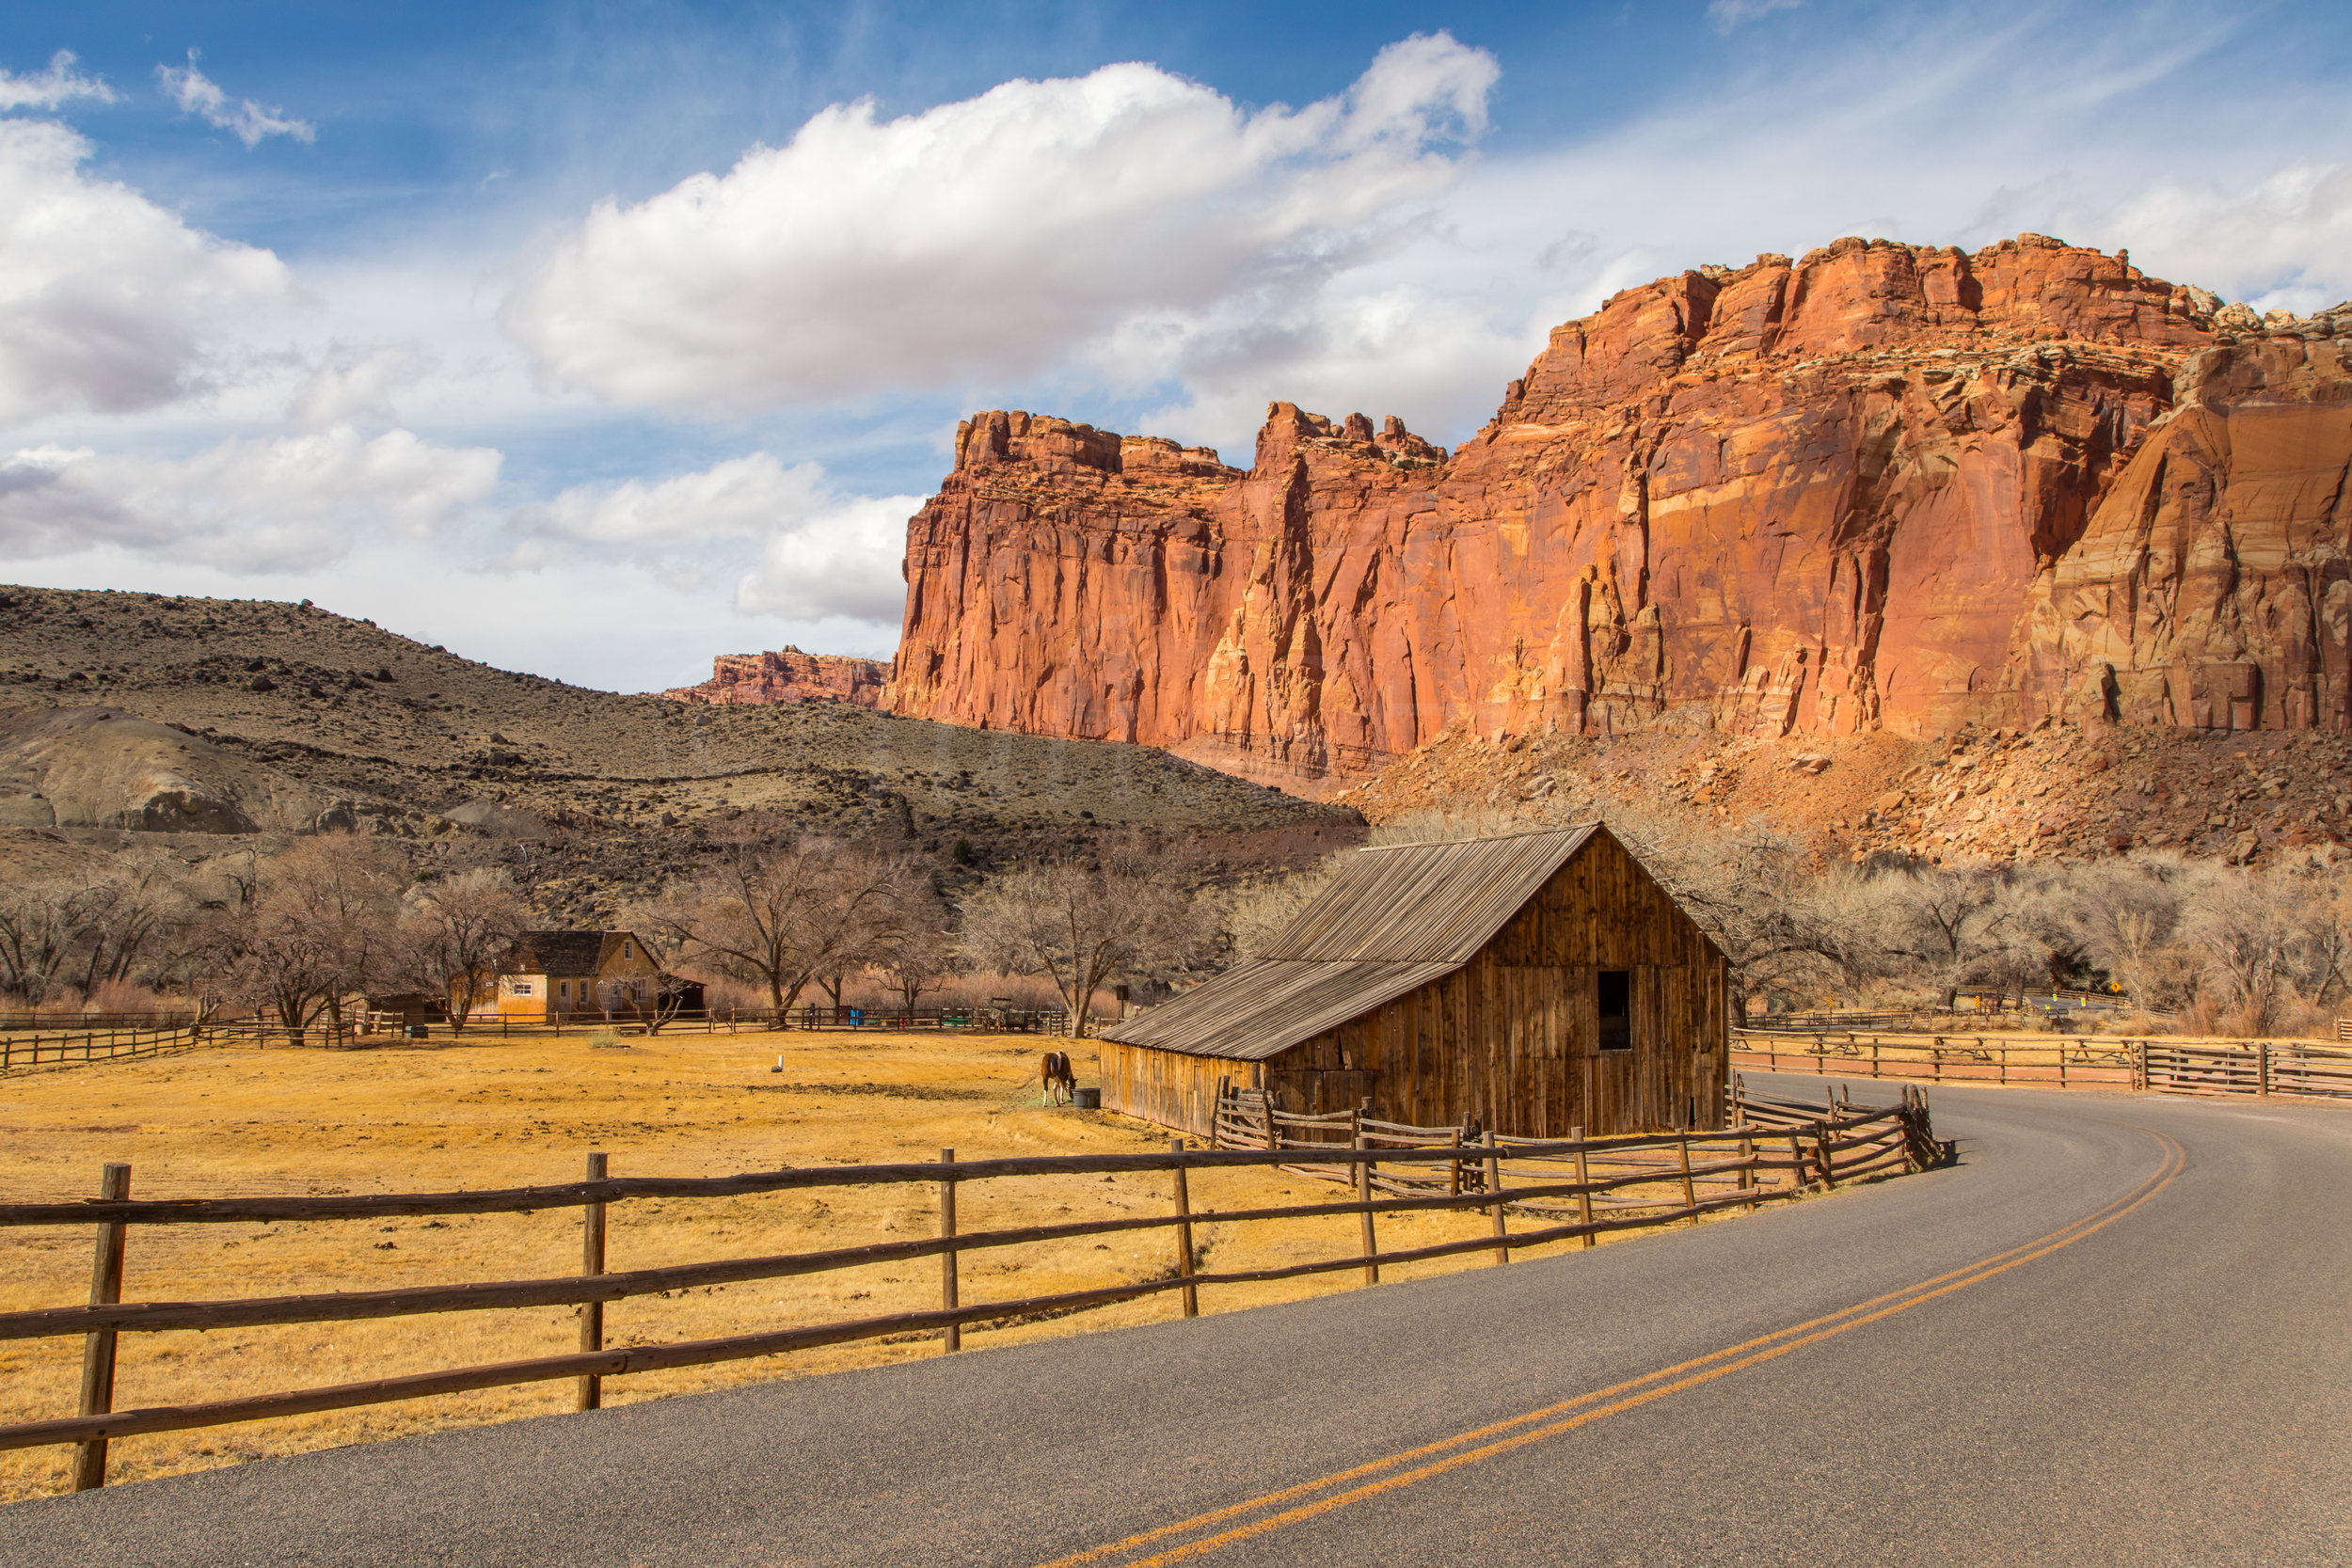 Capitol Reef National Park, Image # 1408